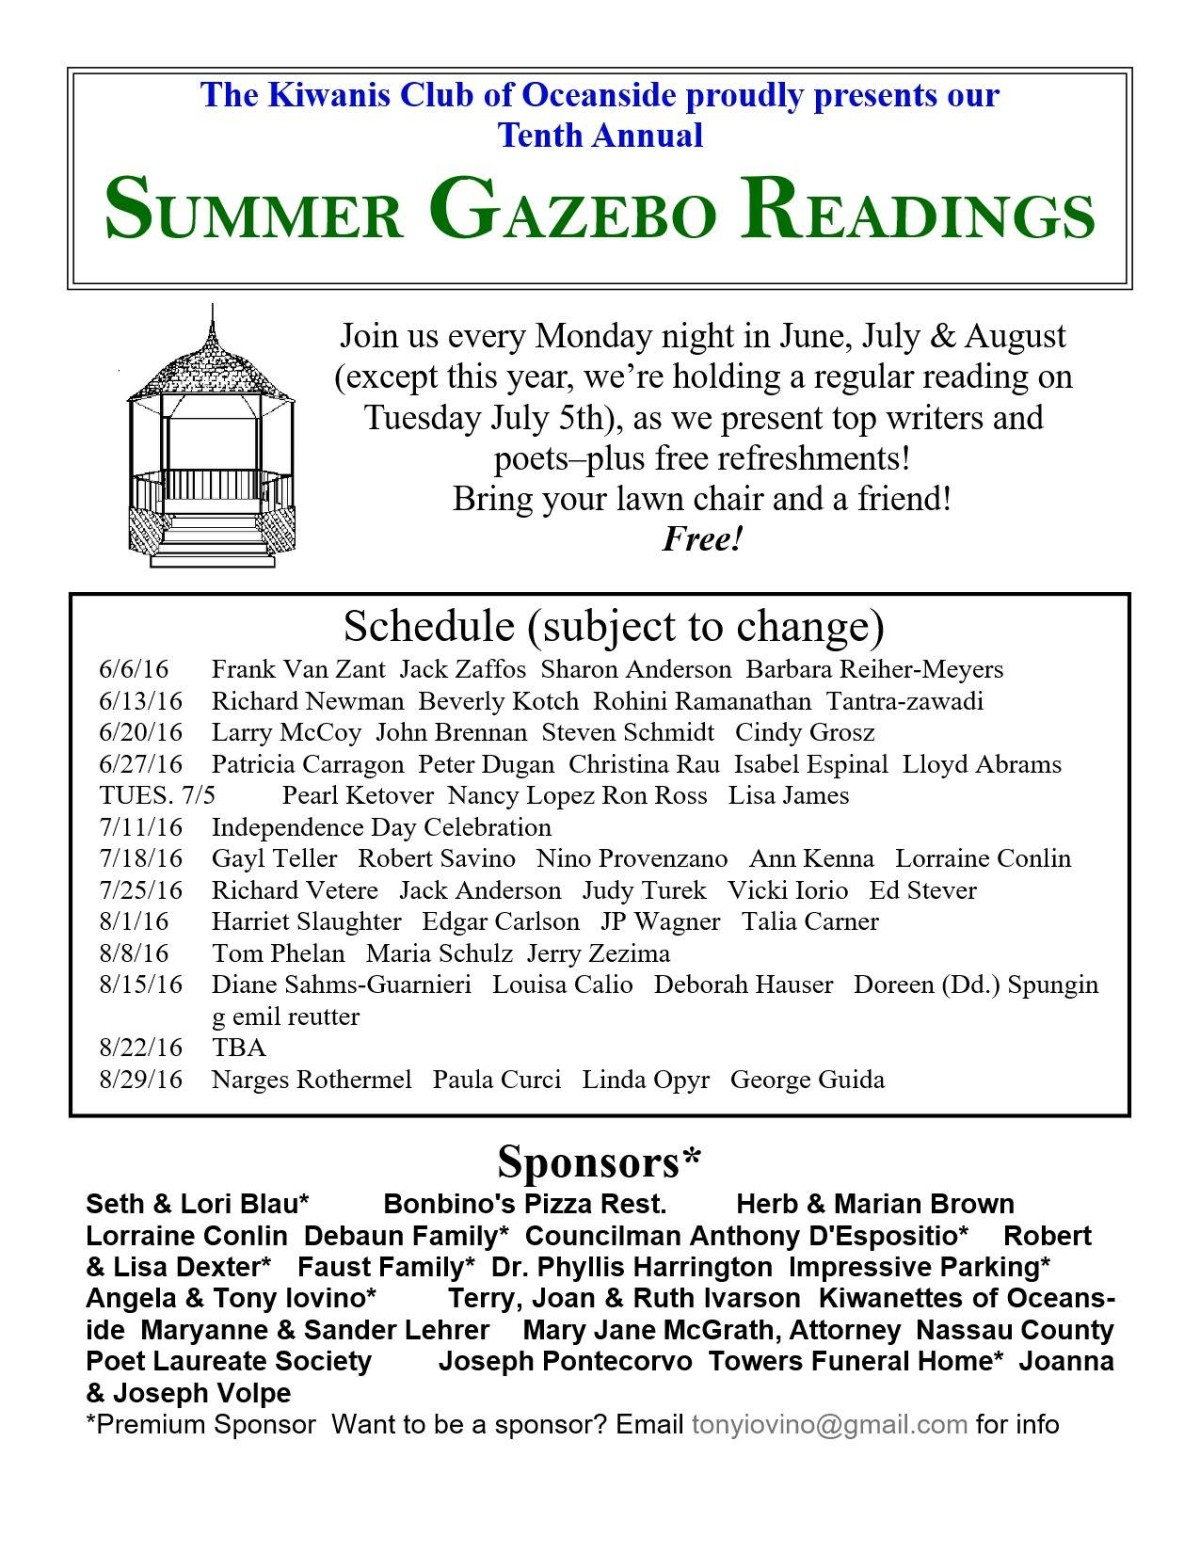 Summer Gazebo Readings